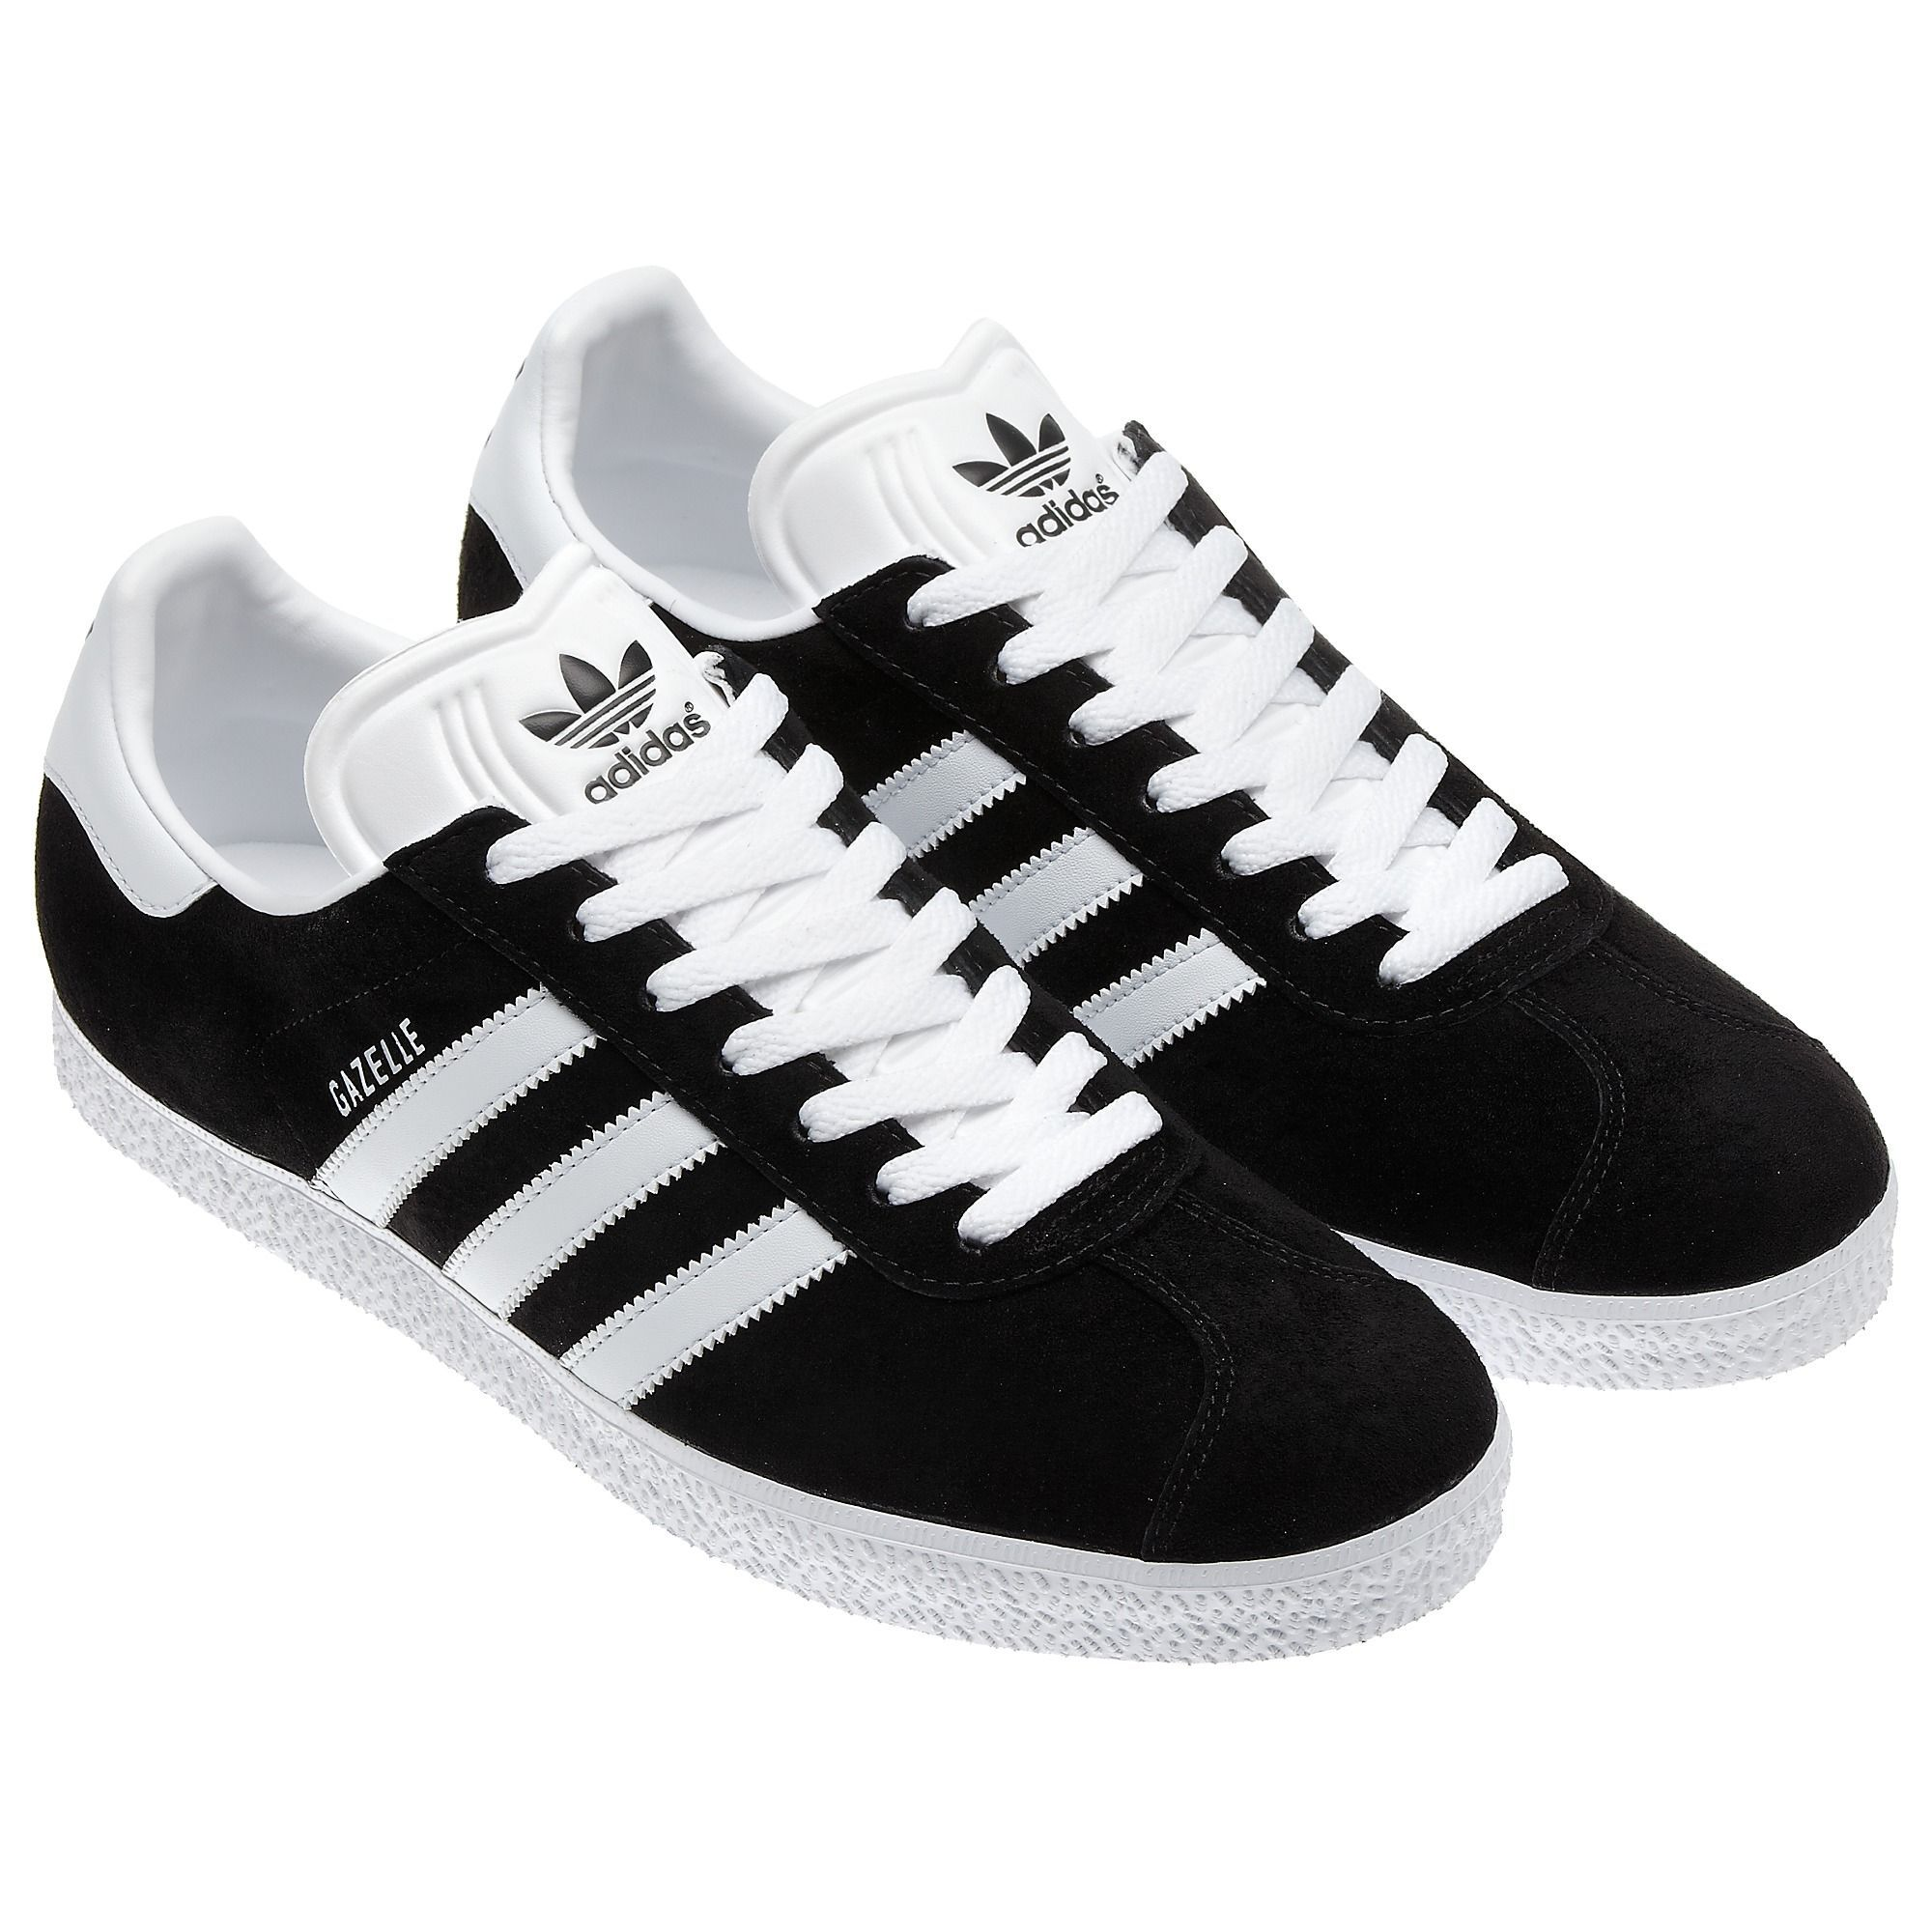 best loved df2ca 64788 adidas - Gazelle Shoes Black  Running White 032622 ADIDAS Mens Shoes  Running - http